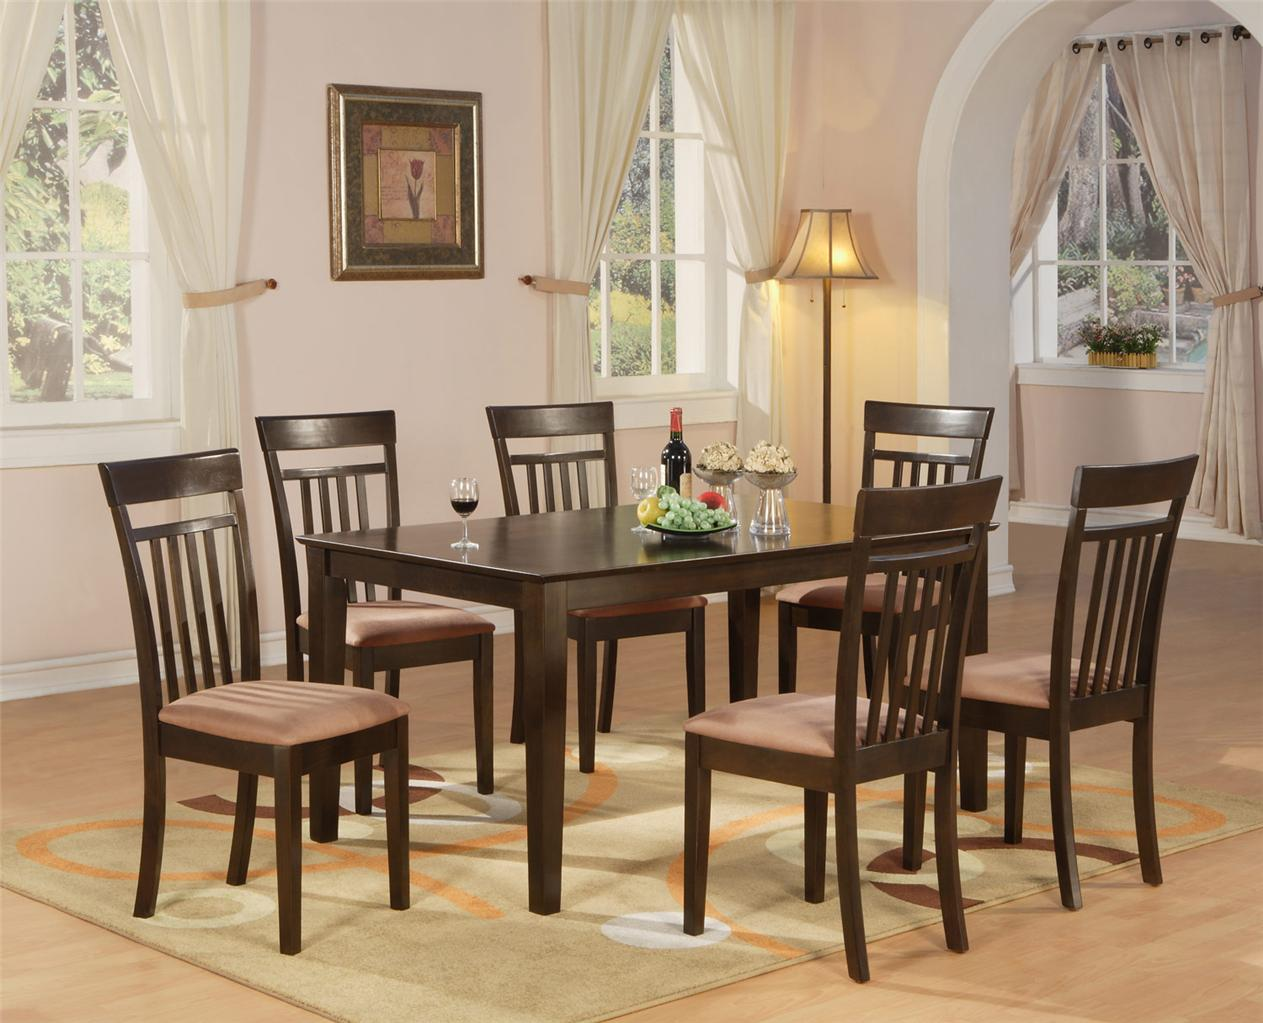 7 pc dining room dinette kitchen set table and 6 chairs ebay for Dining room table and 6 chairs